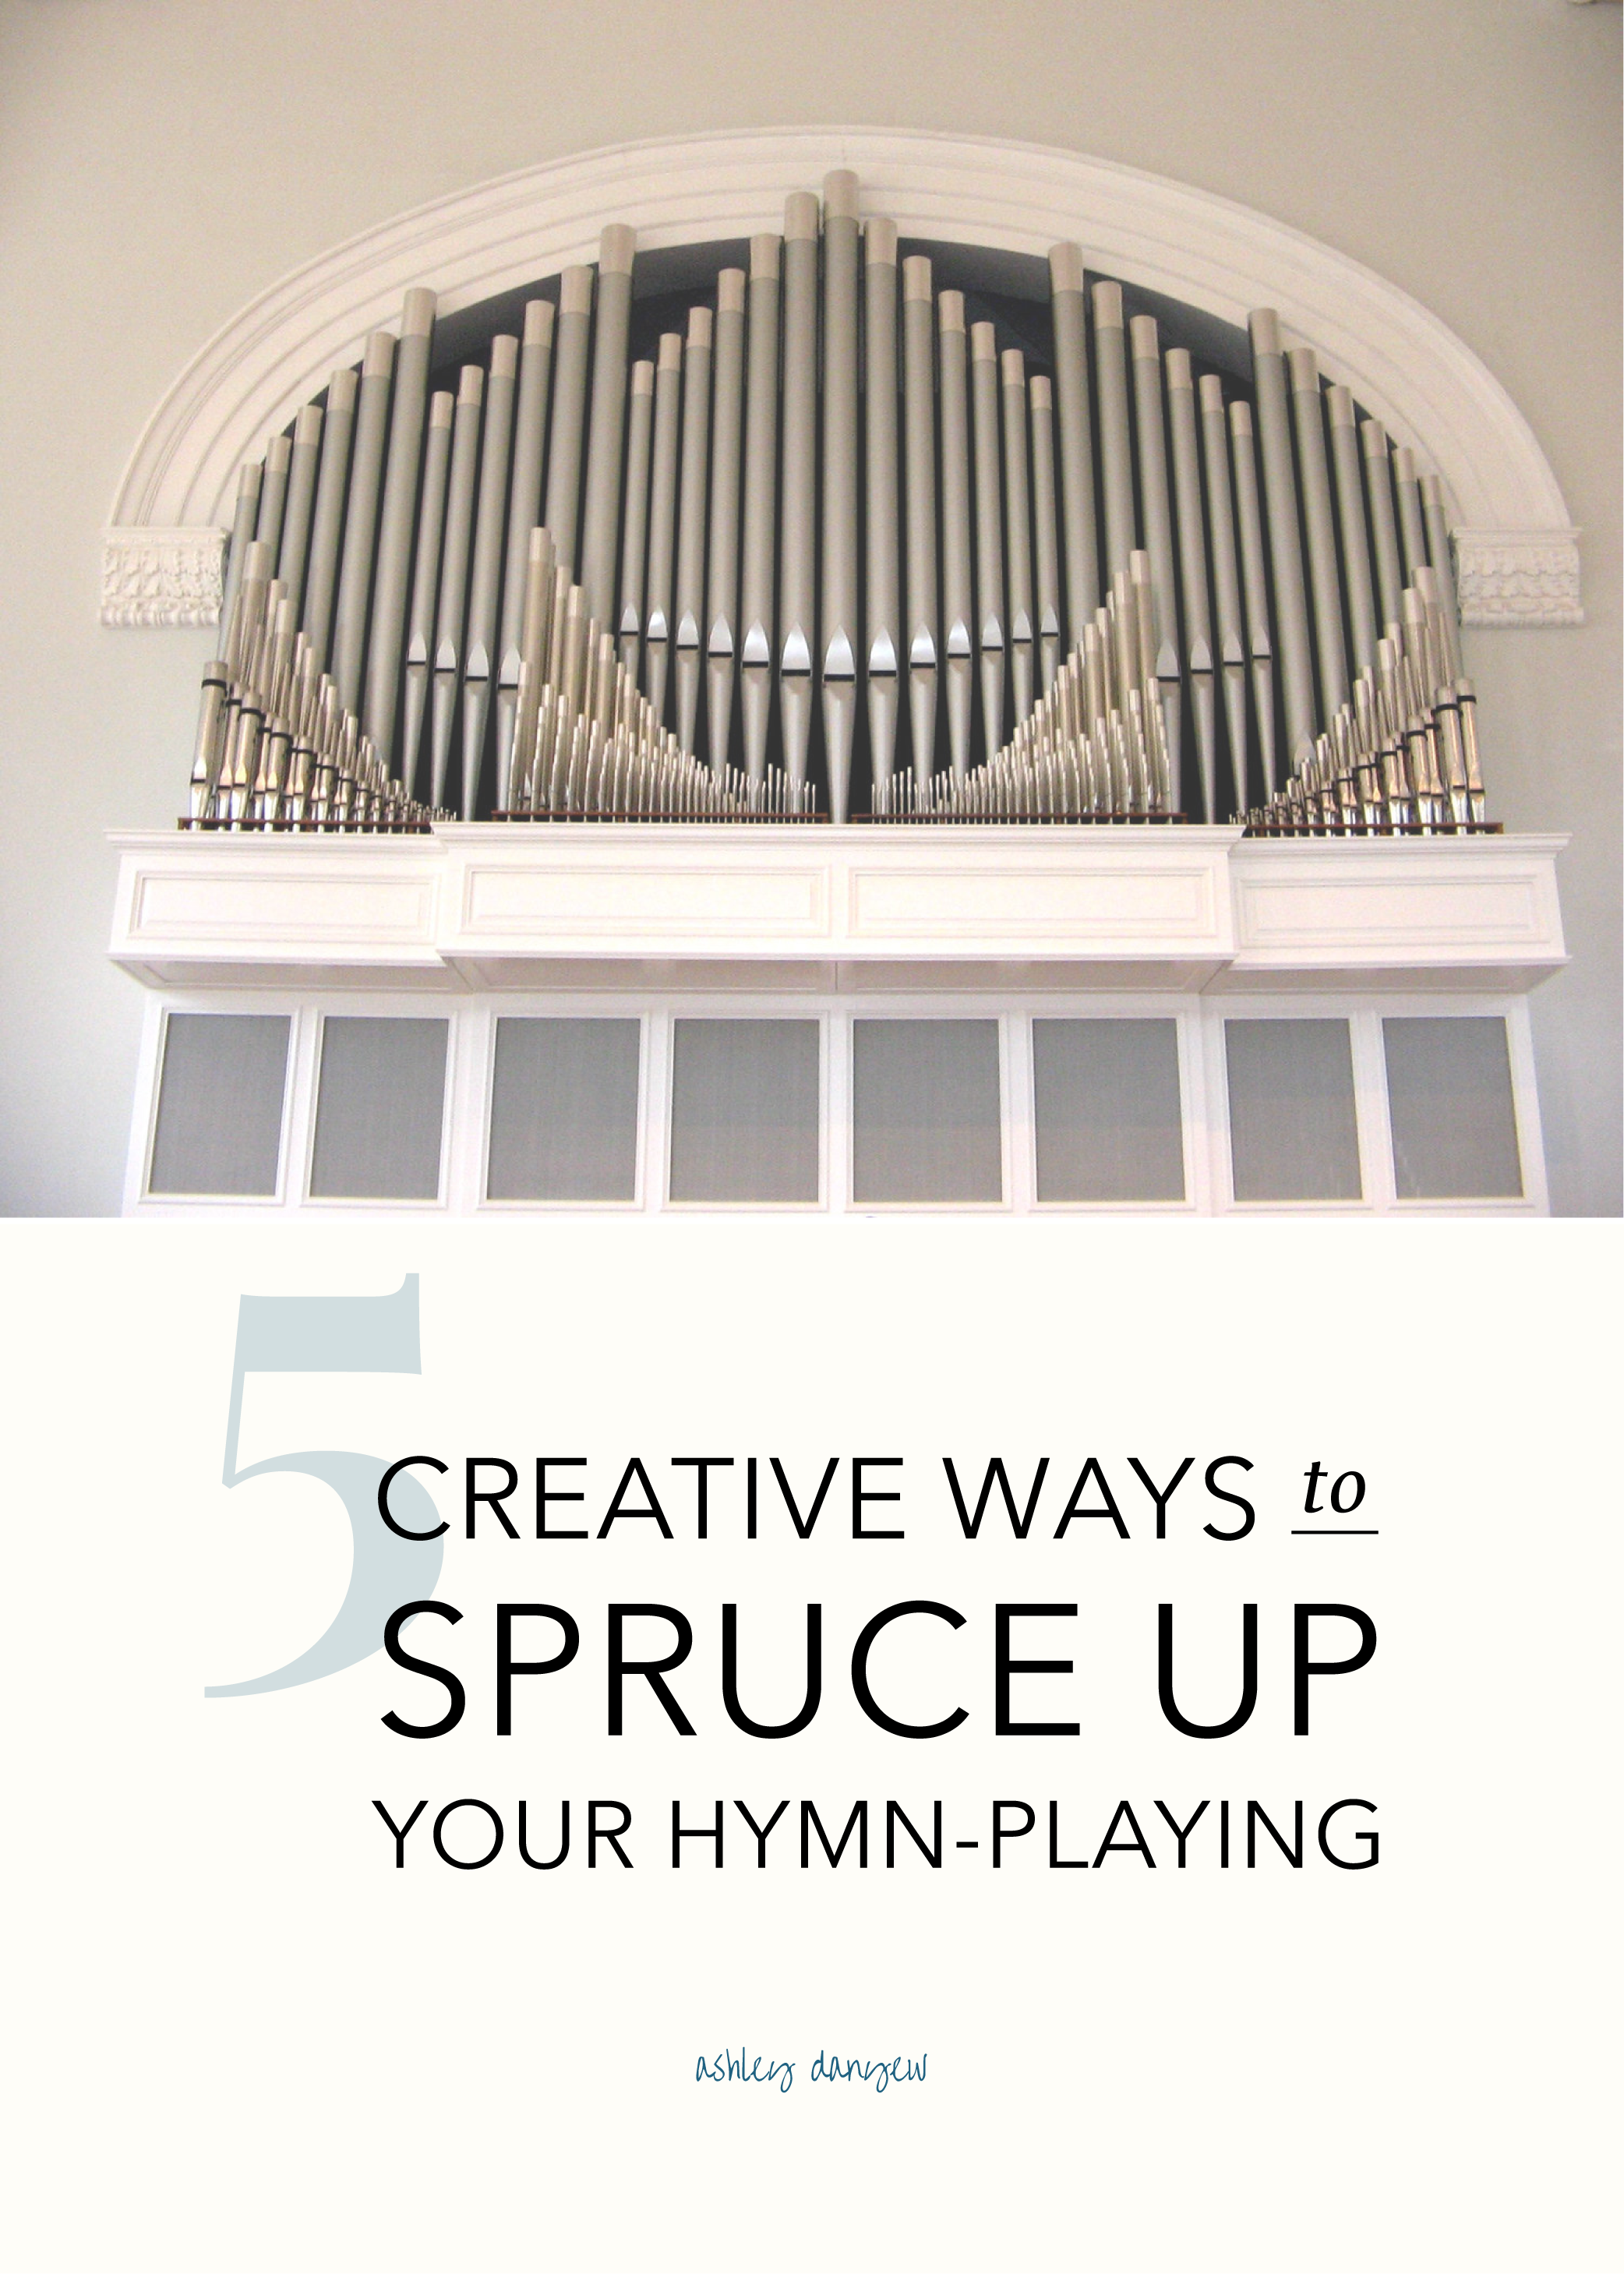 5 Creative Ways to Spruce Up Your Hymn-Playing-26.png